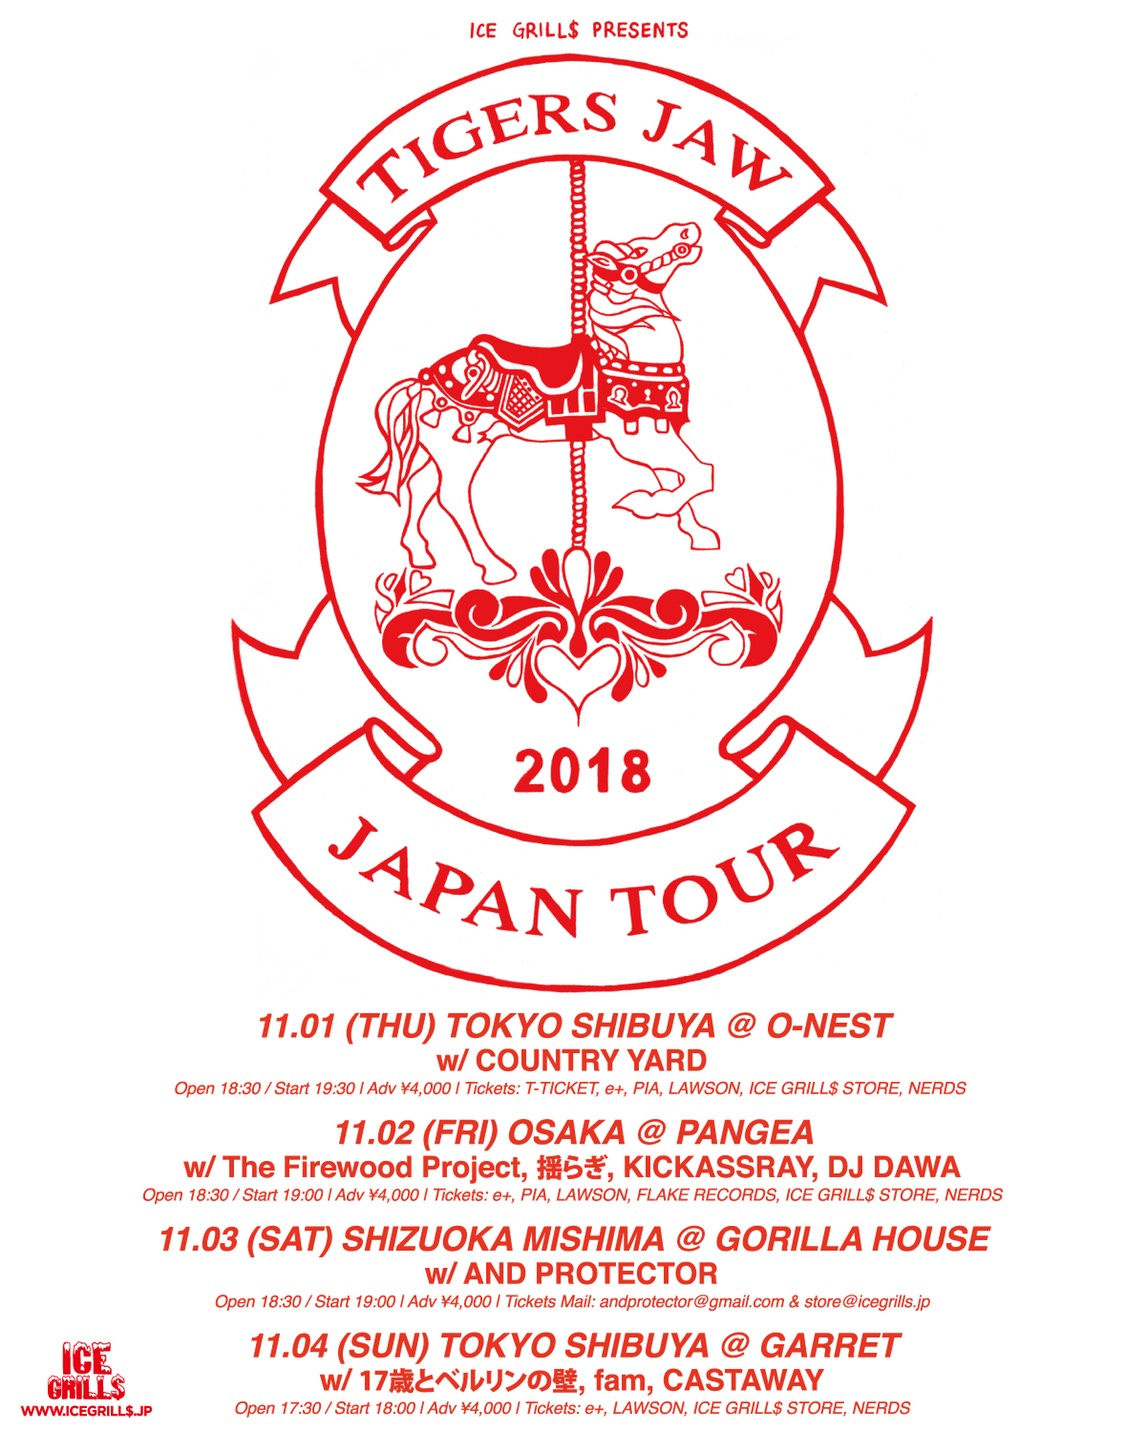 TIGERS JAW japan tour